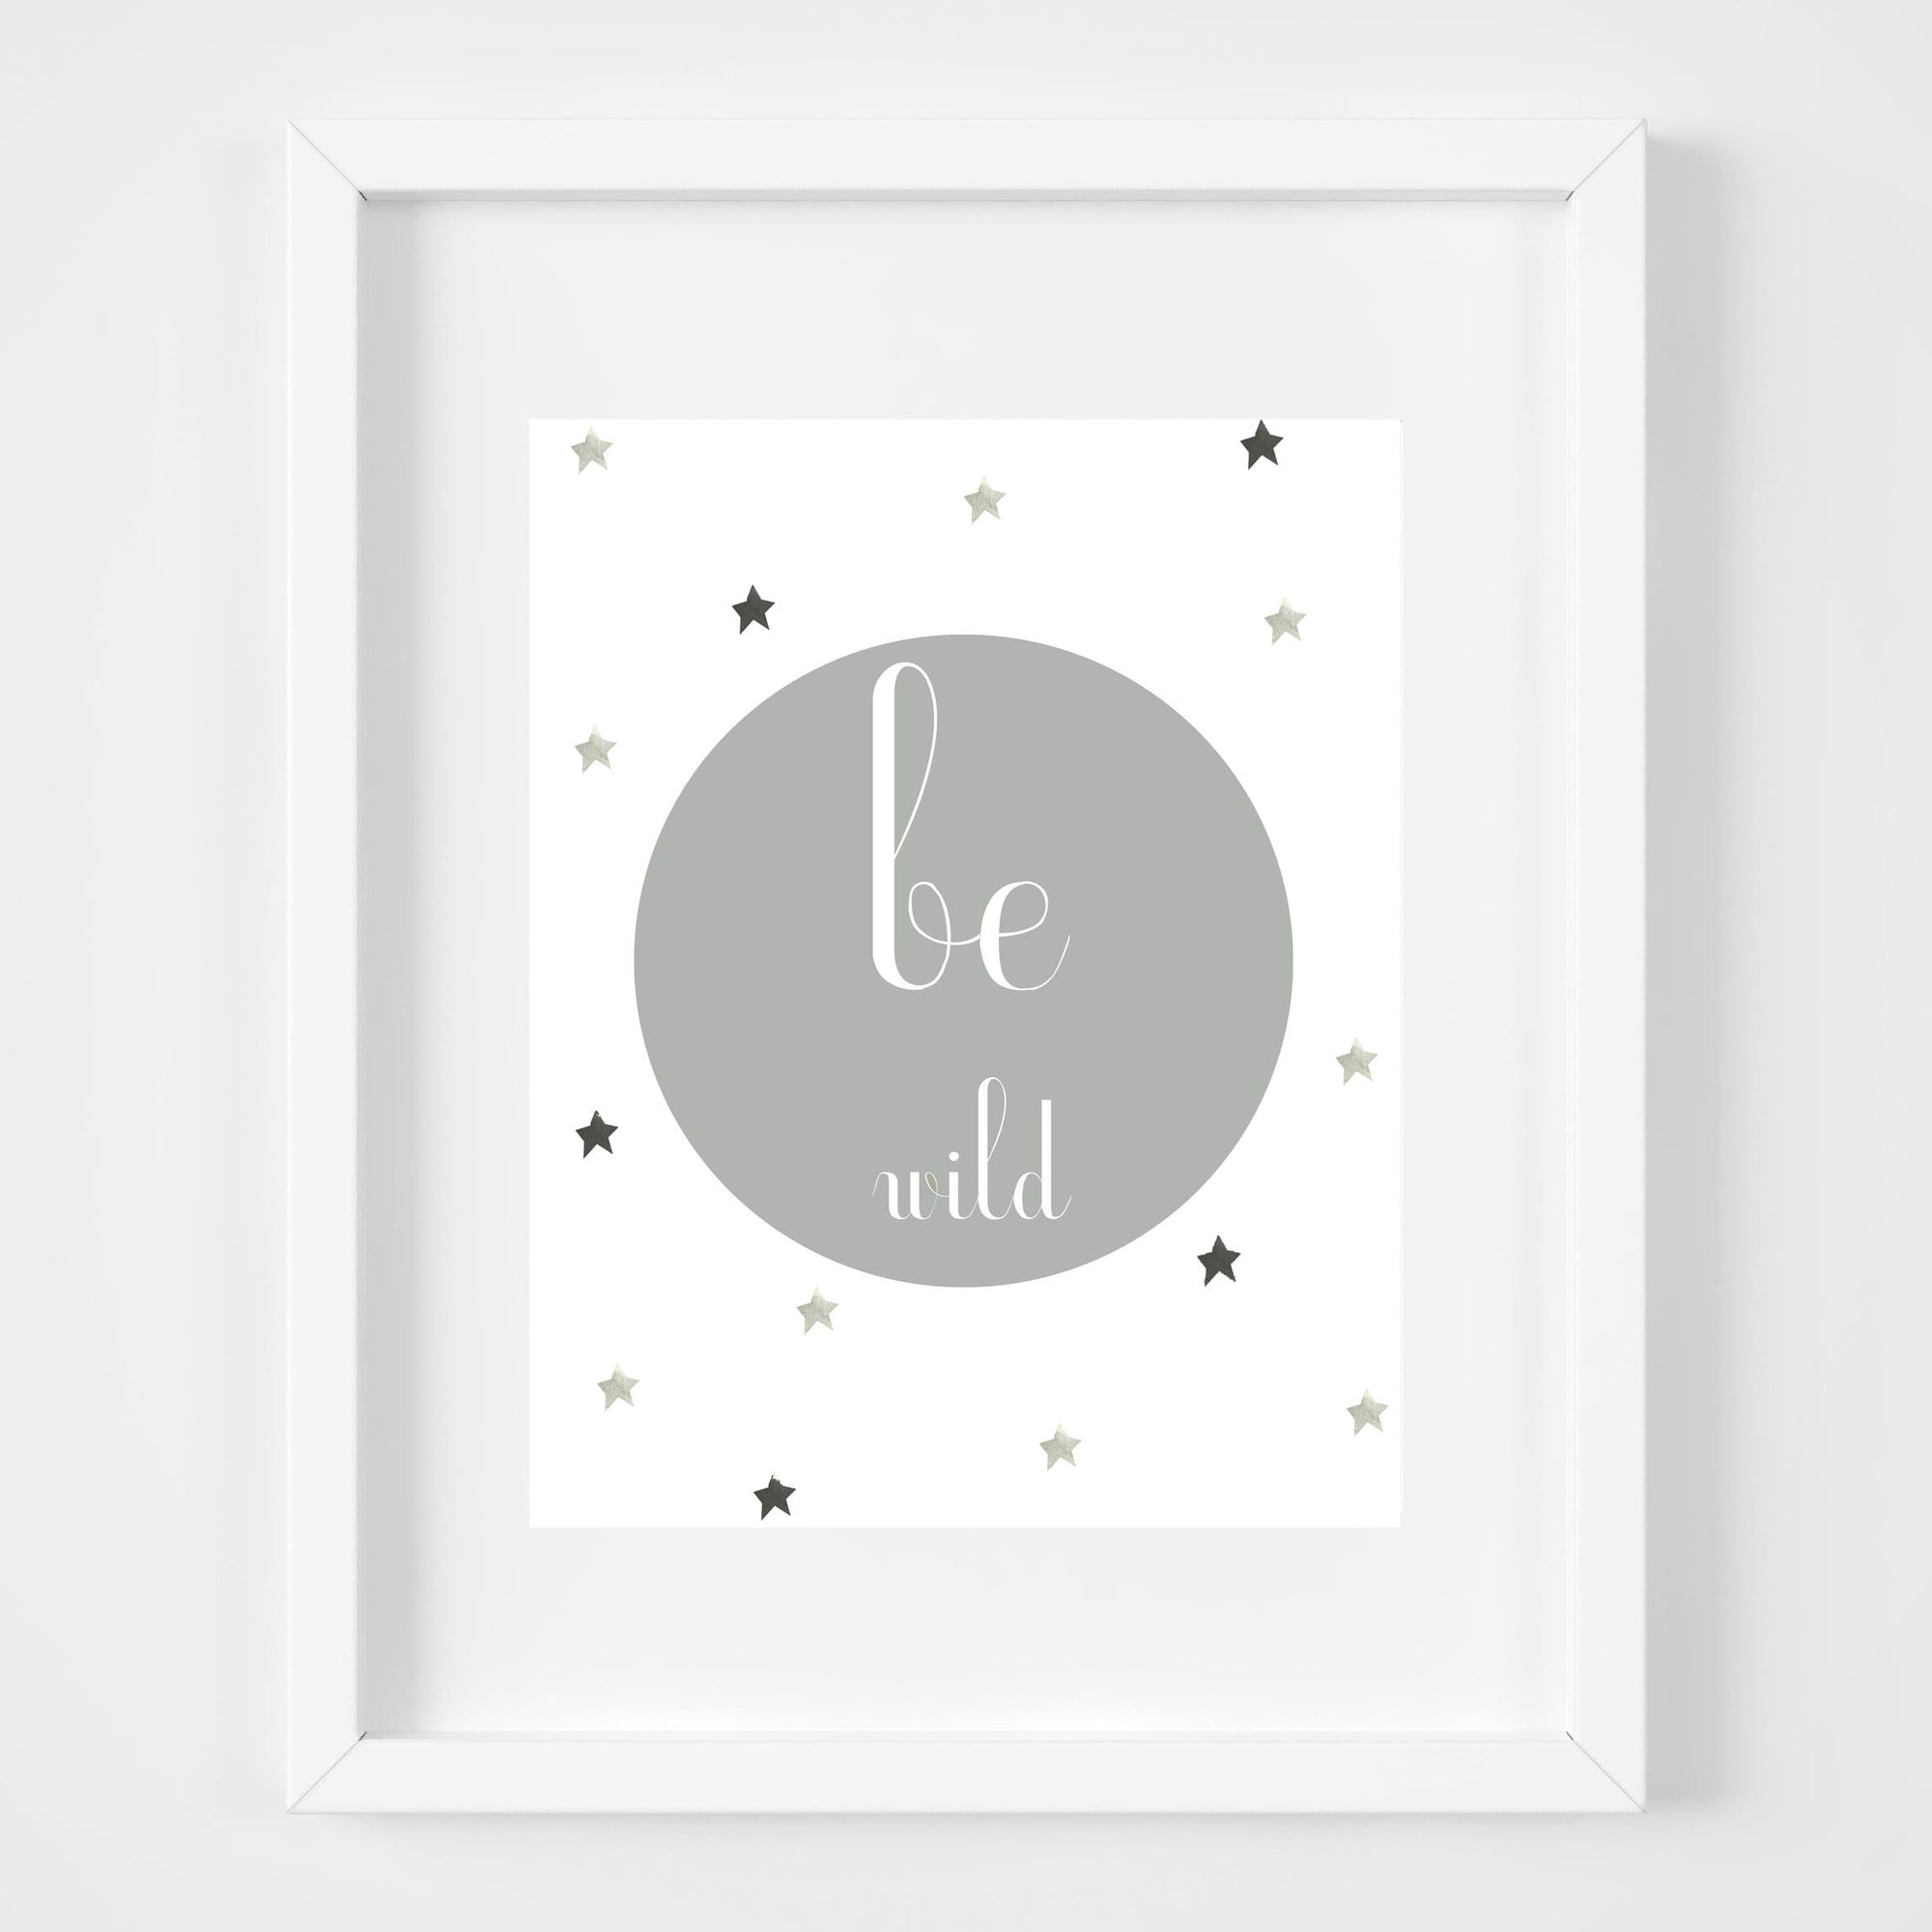 bebemoss.com Be wild print handmade by moms  gifts with purpose